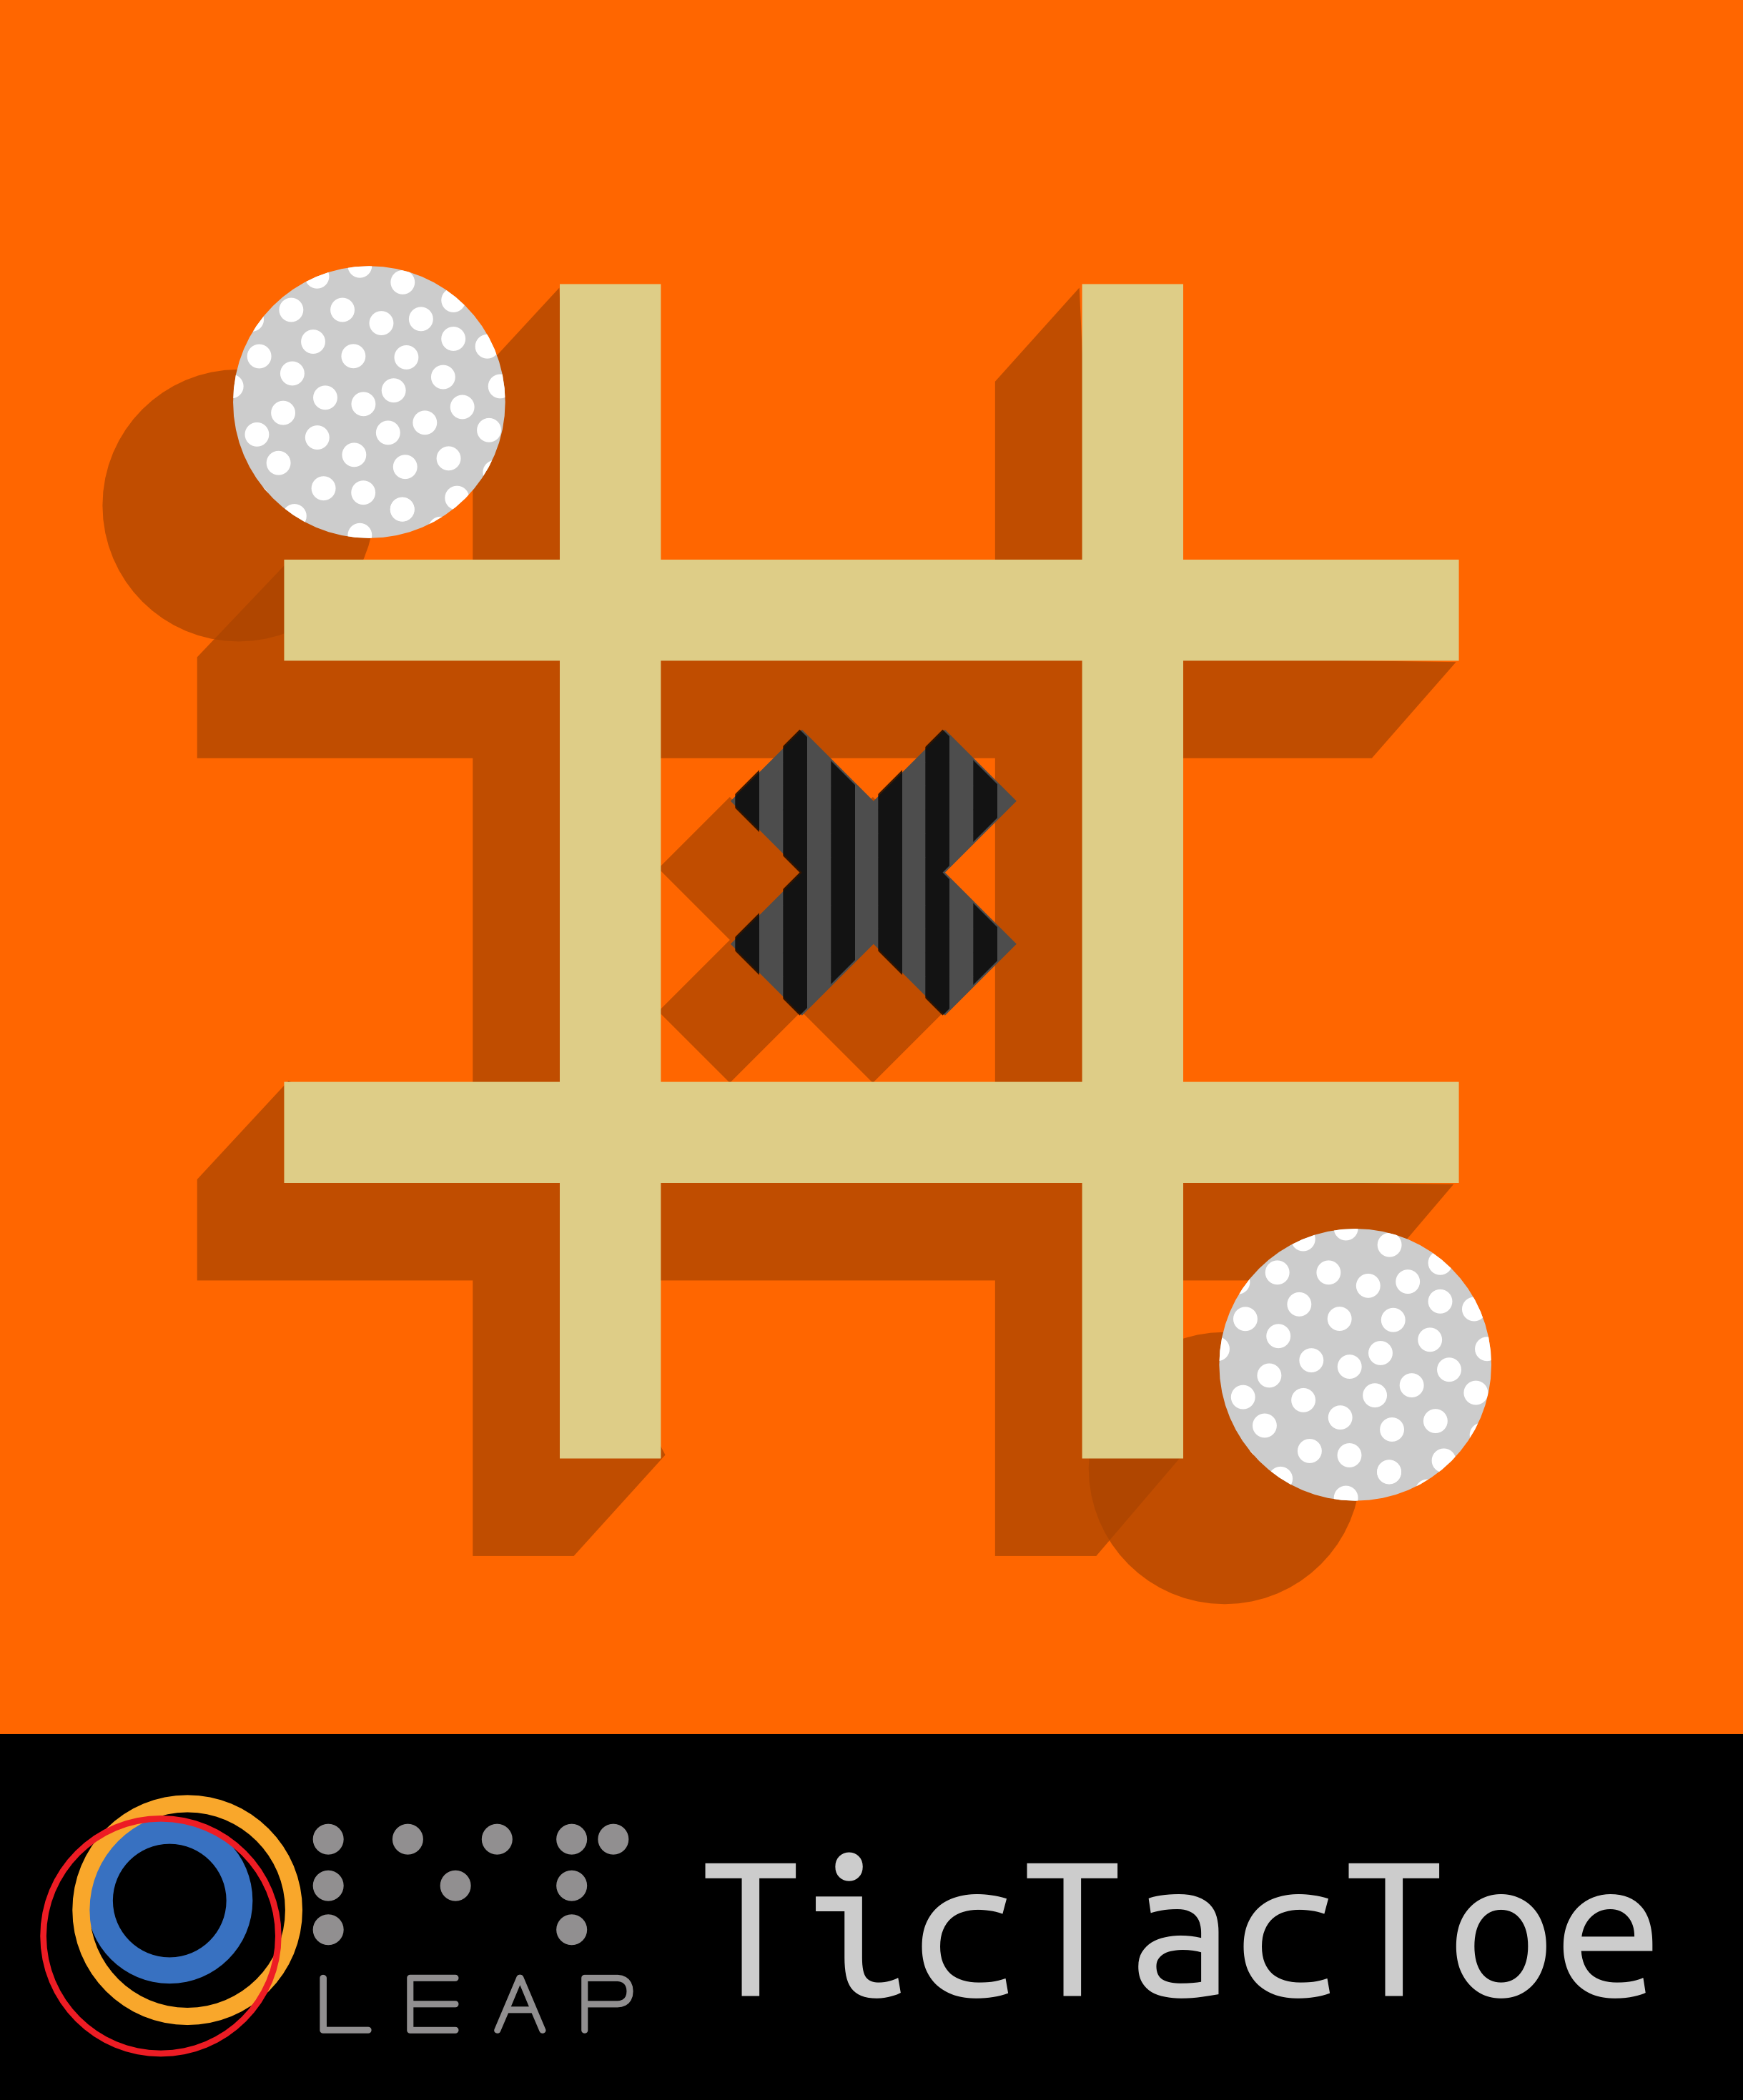 LEAP - TicTacToe